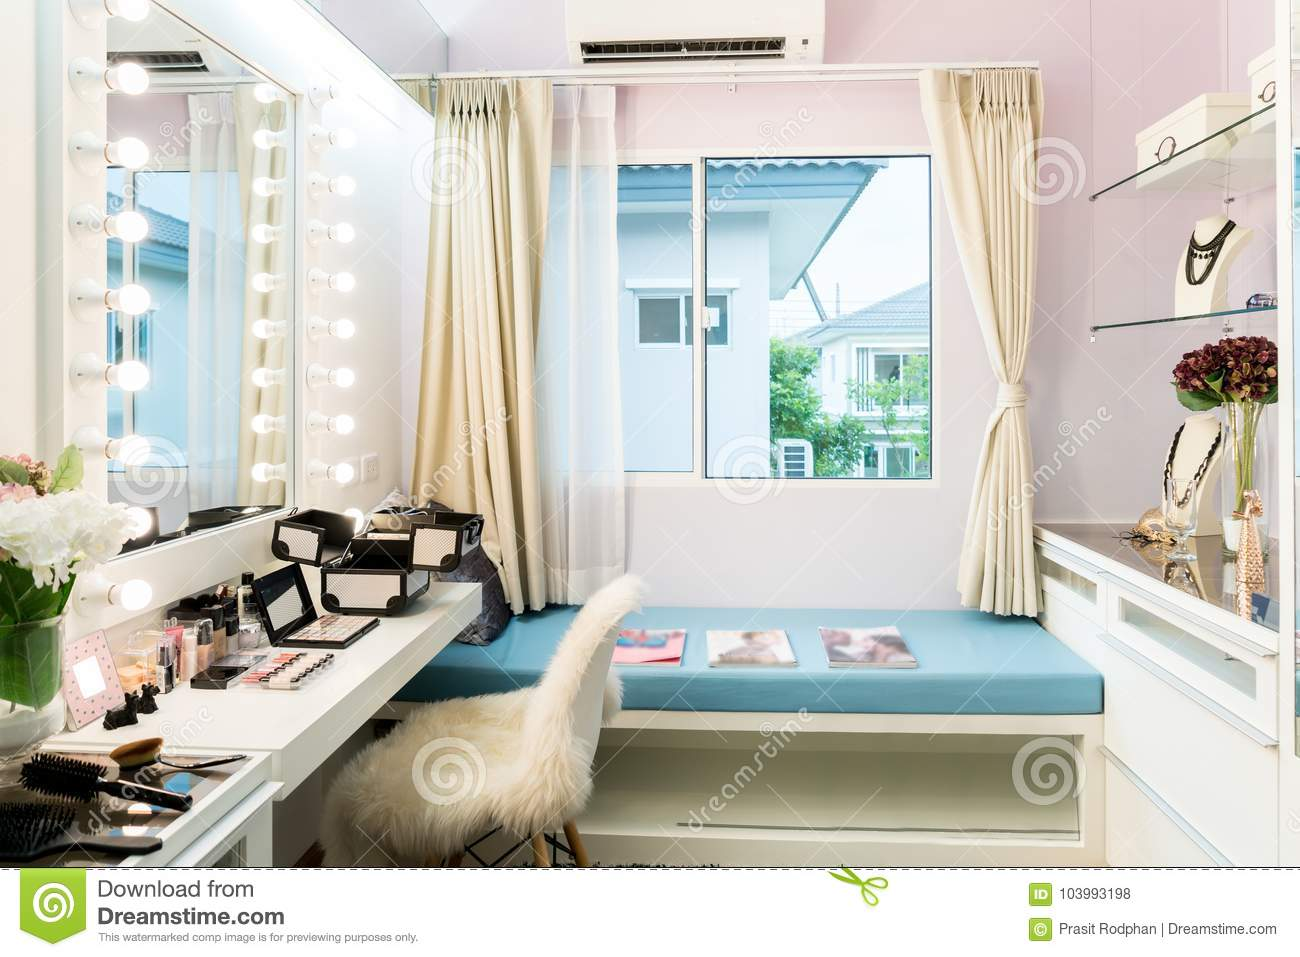 Modern Closet Room With Make Up Vanity Table Mirror And Cosmetics Product In Flat Style House Stock Photo Image Of Floor Design 103993198